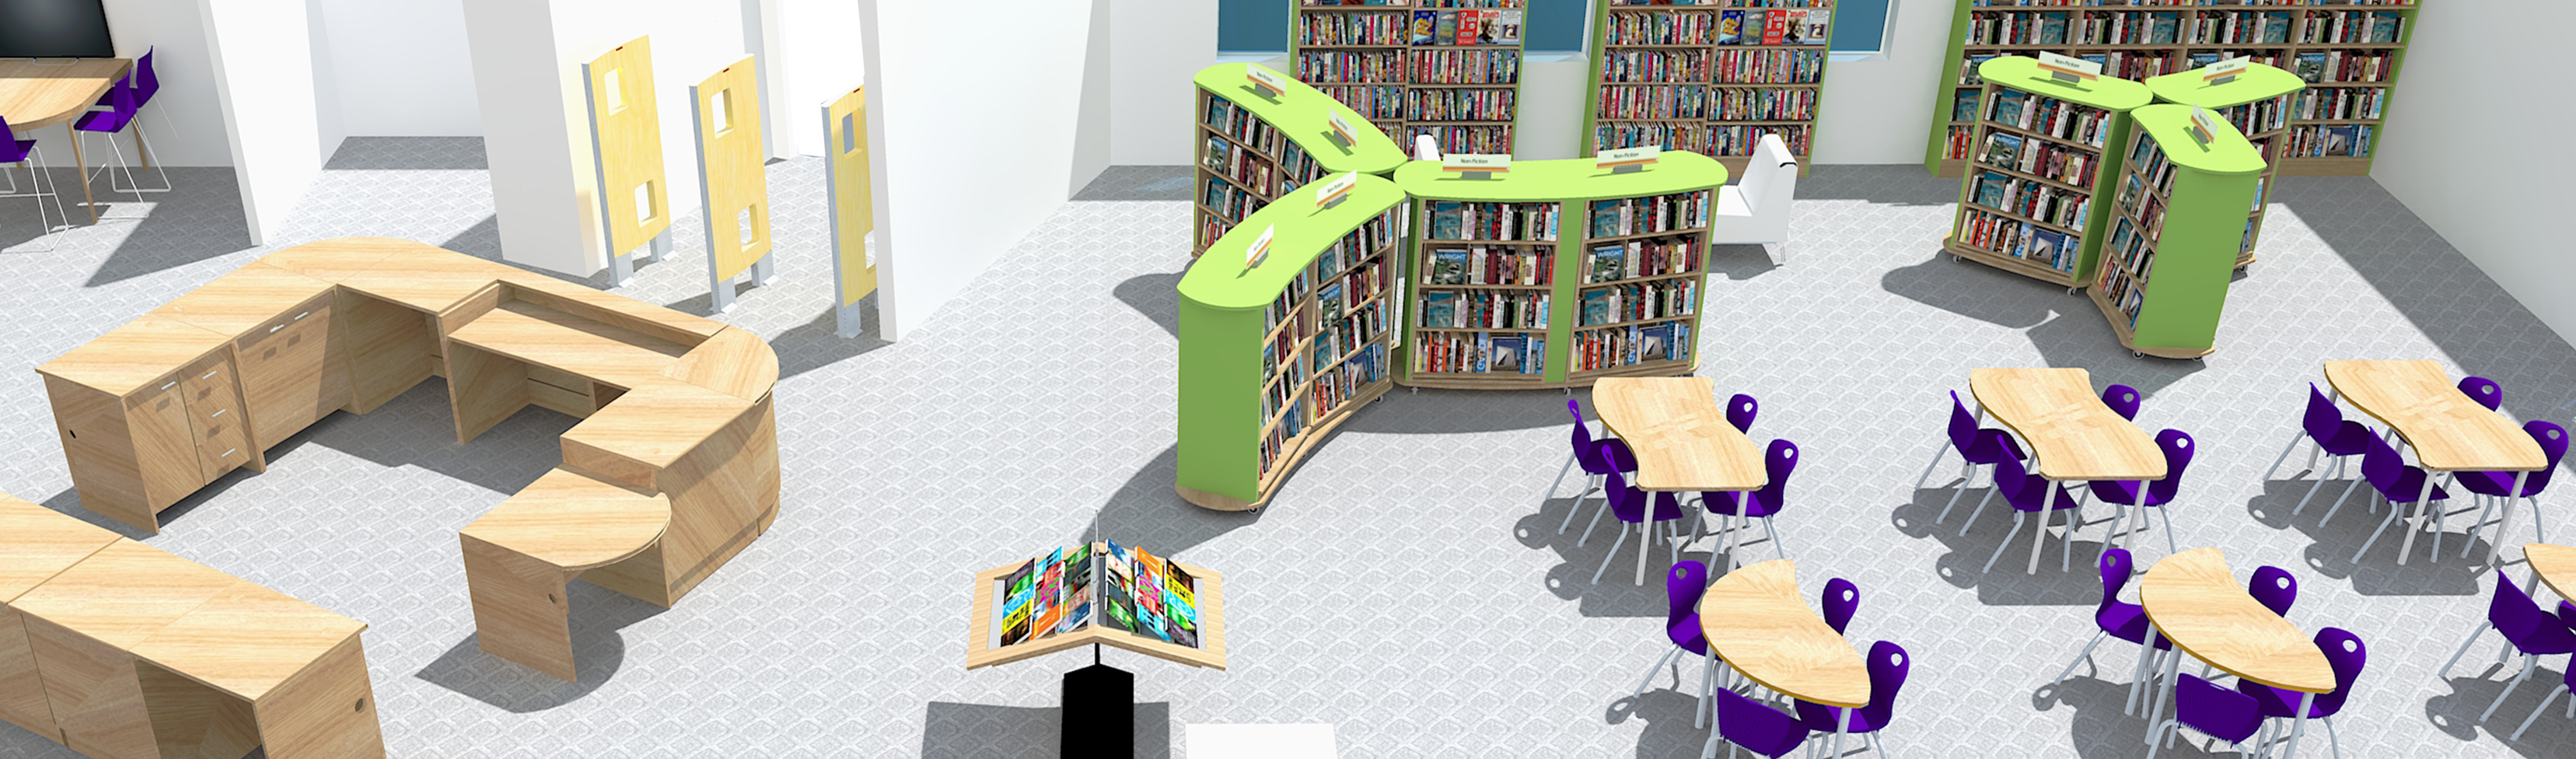 3D rendering of library with collaborative desks, desk chairs and bookshelves